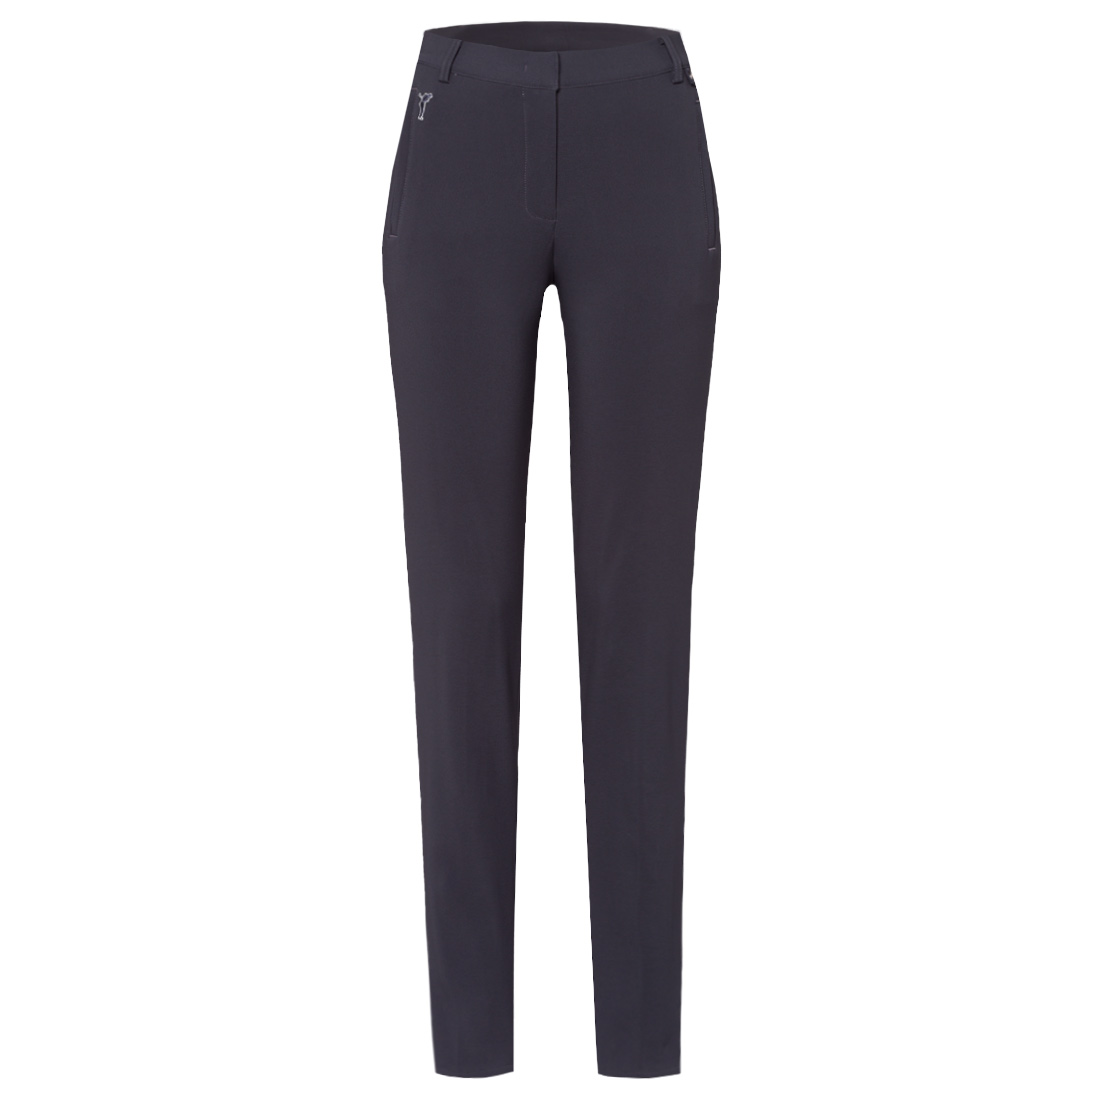 Thermo stretch ladies' golf trousers in slim fit